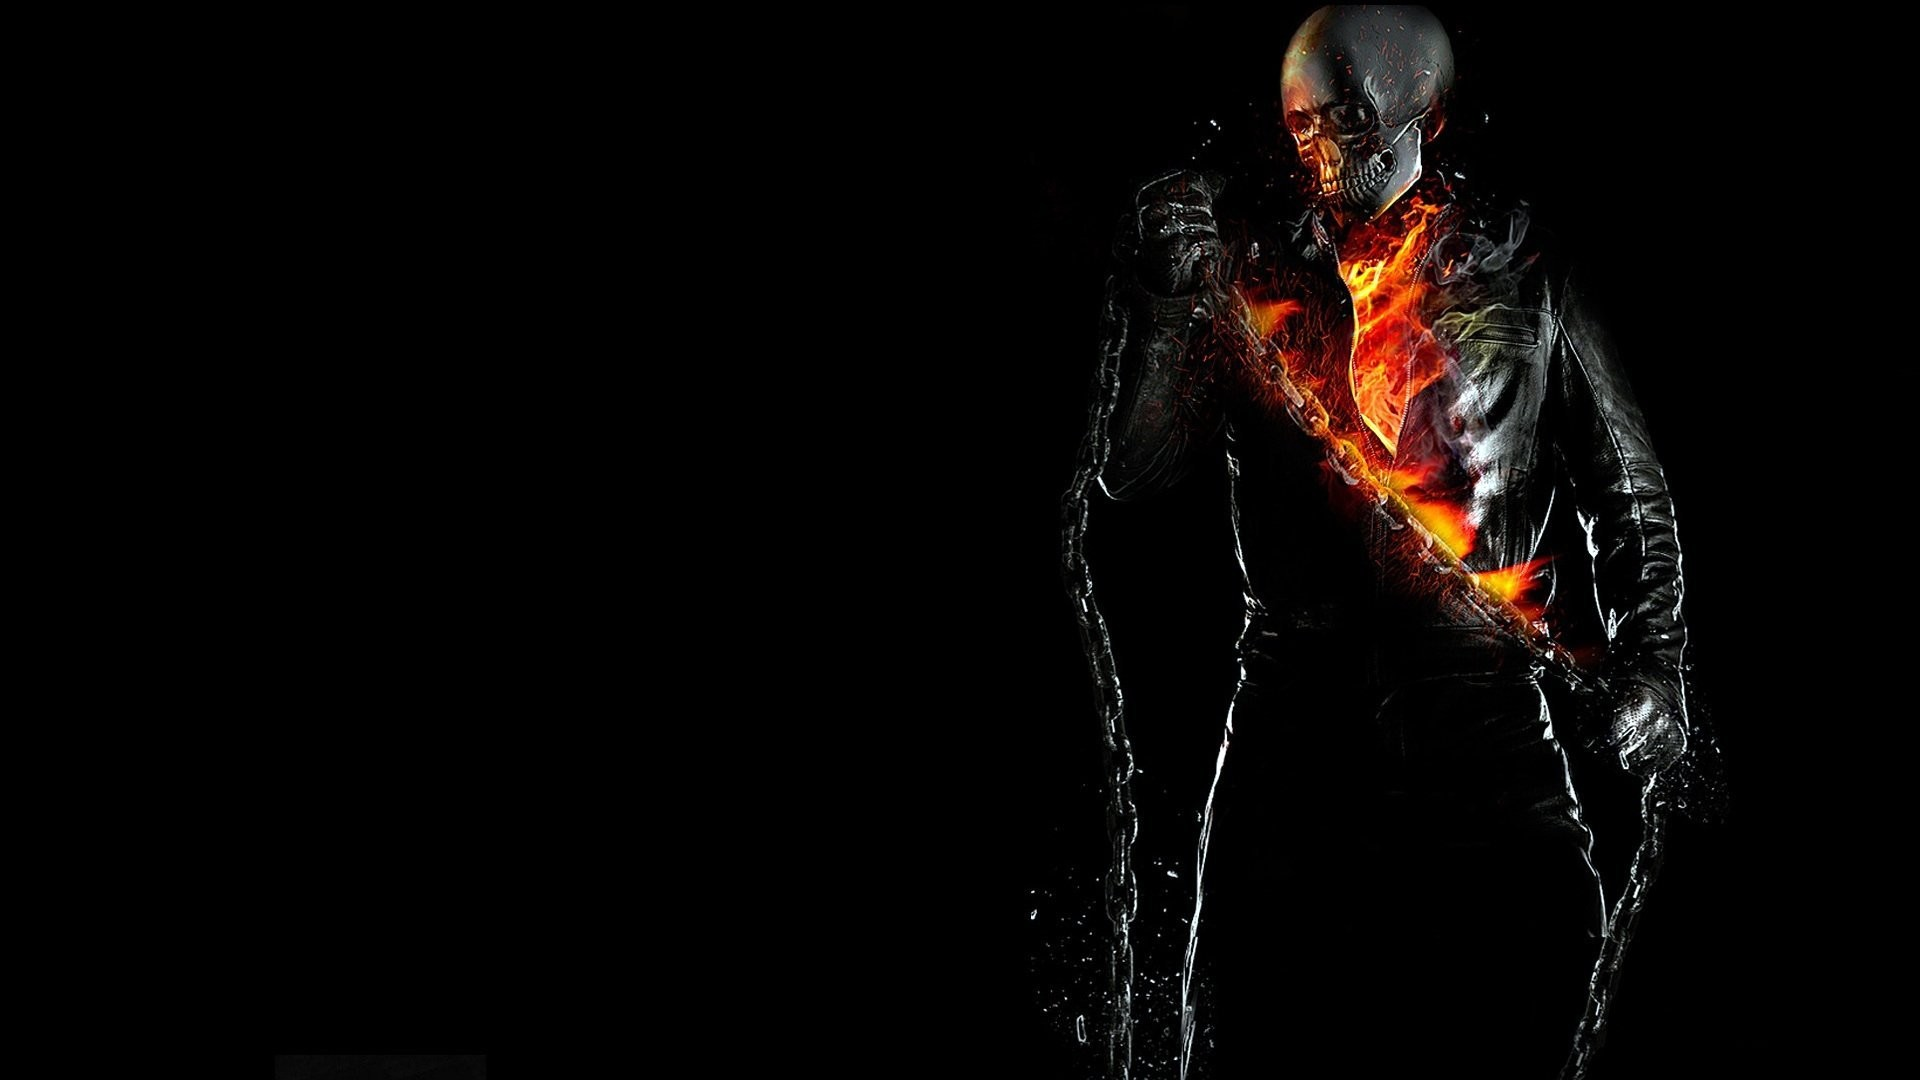 ghost rider backgrounds 64 images